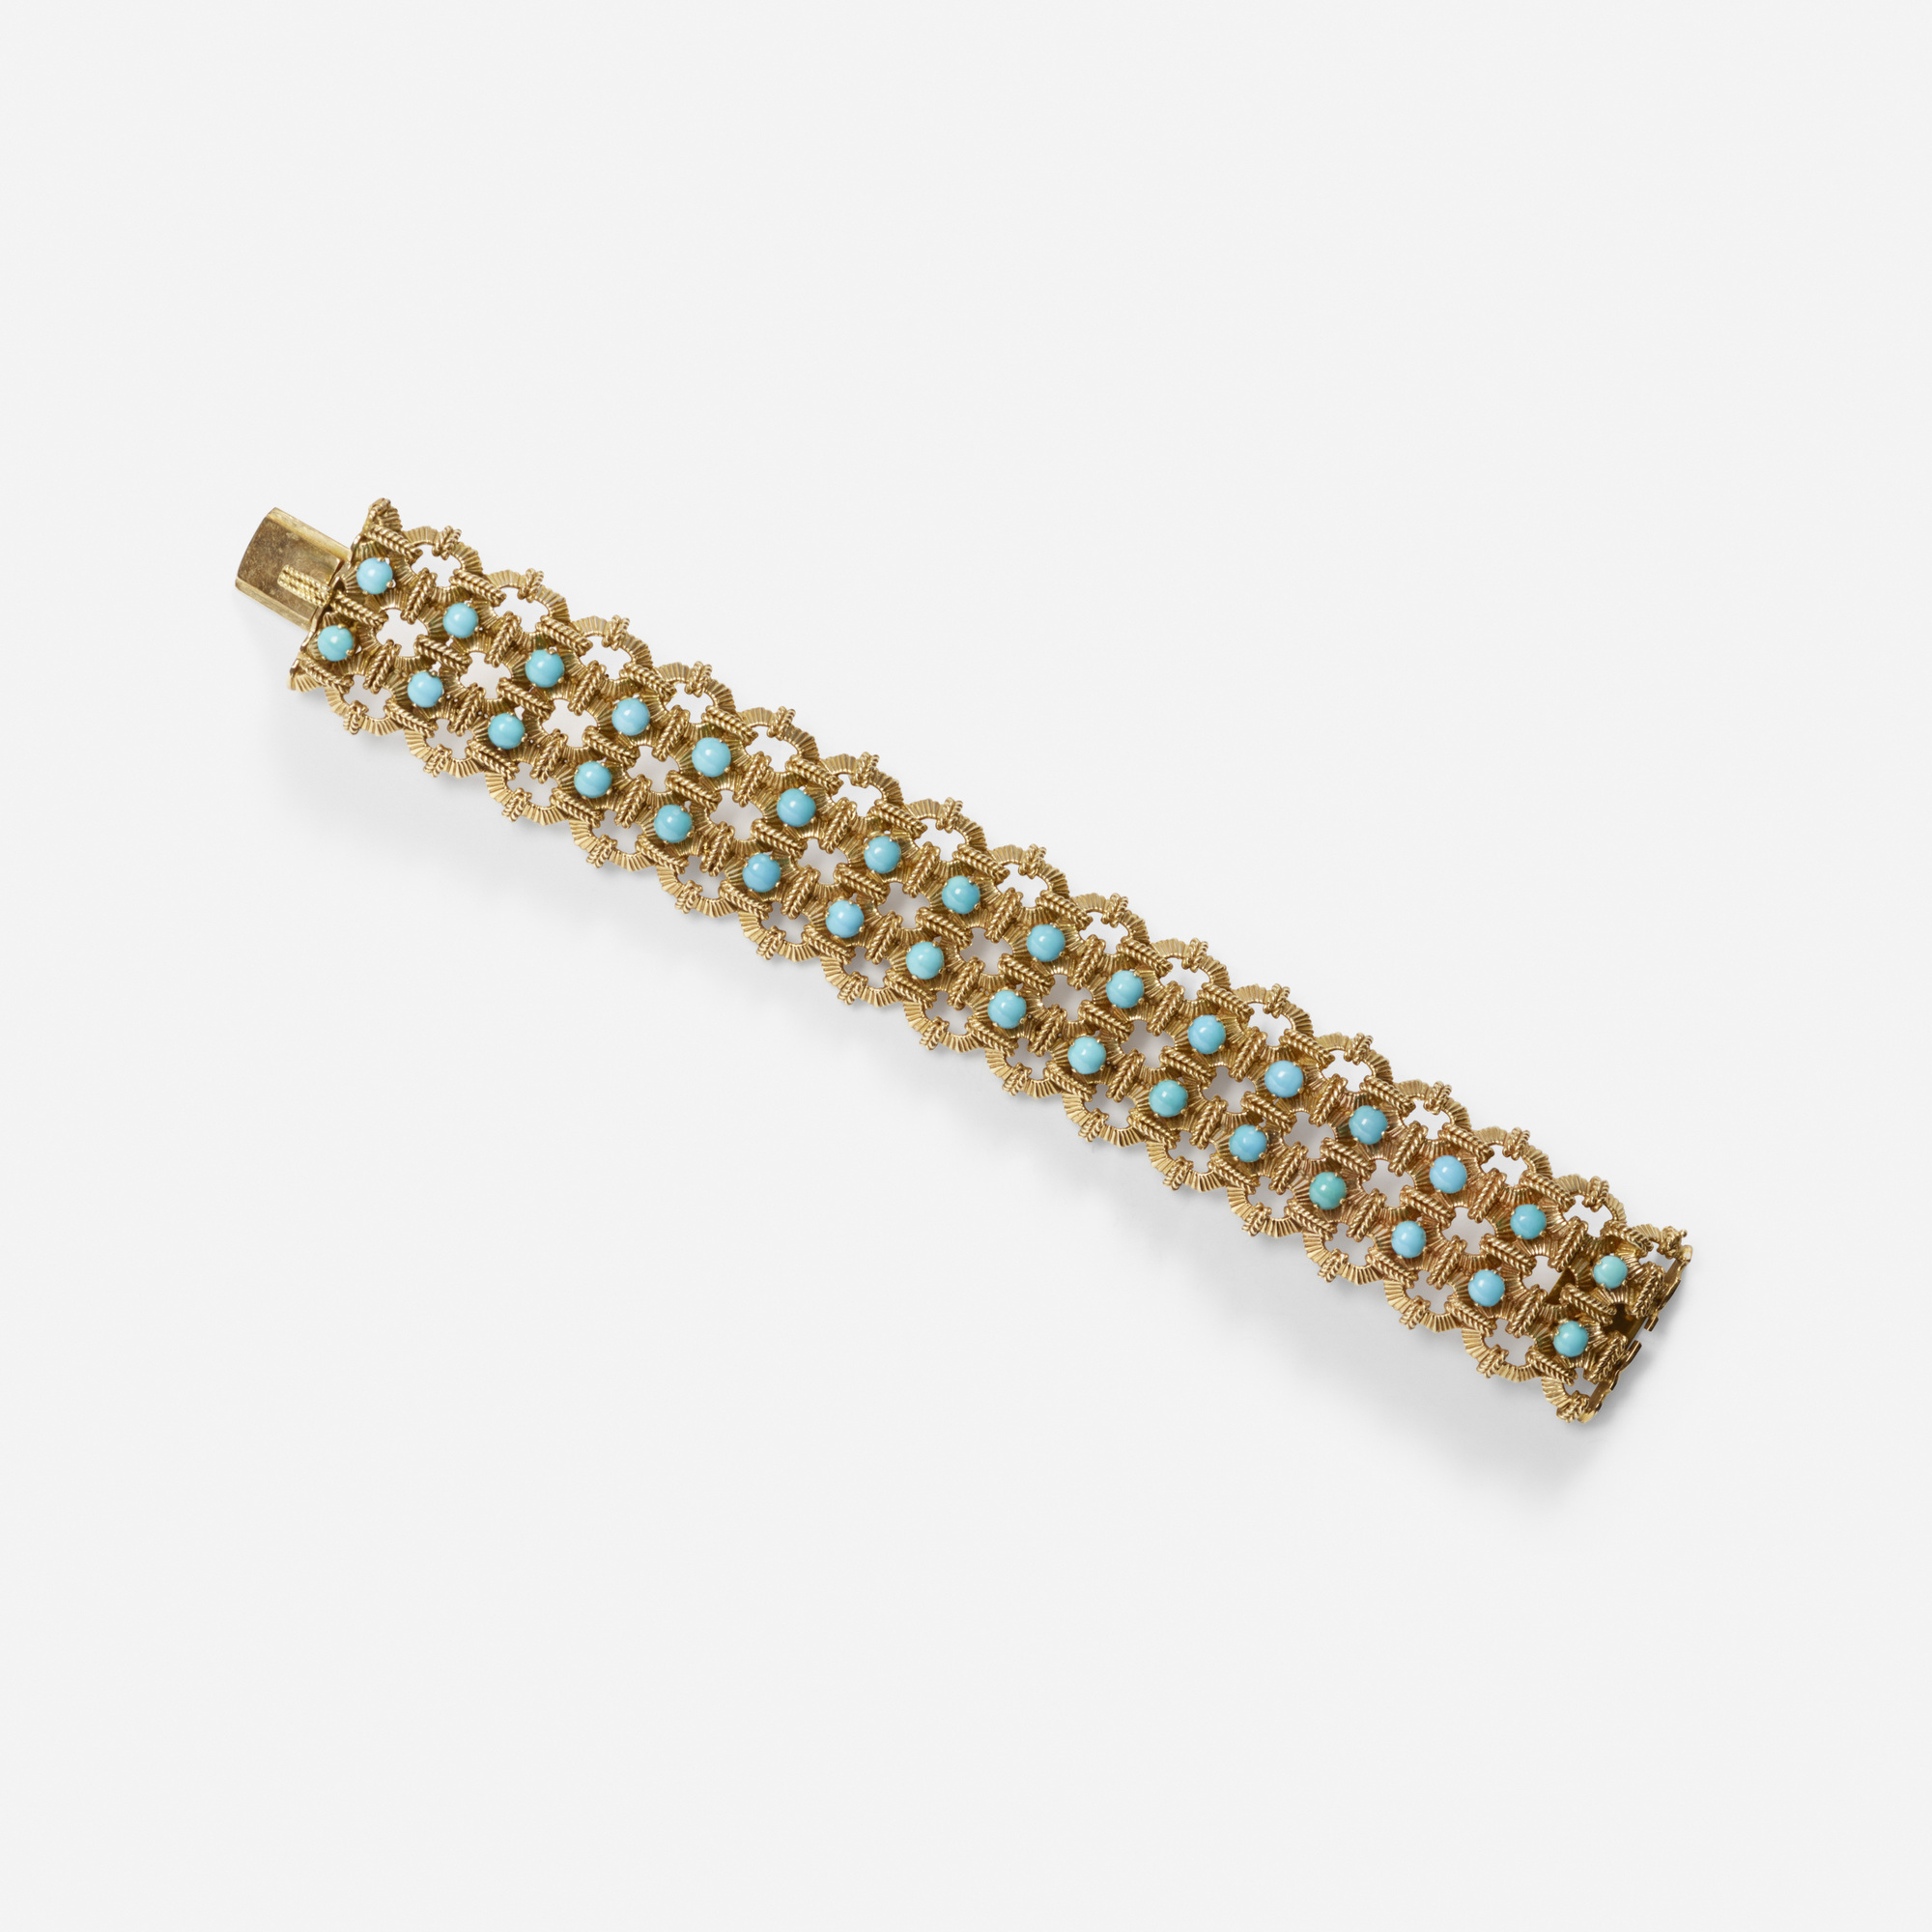 235:  / A gold and turquoise bracelet (1 of 1)